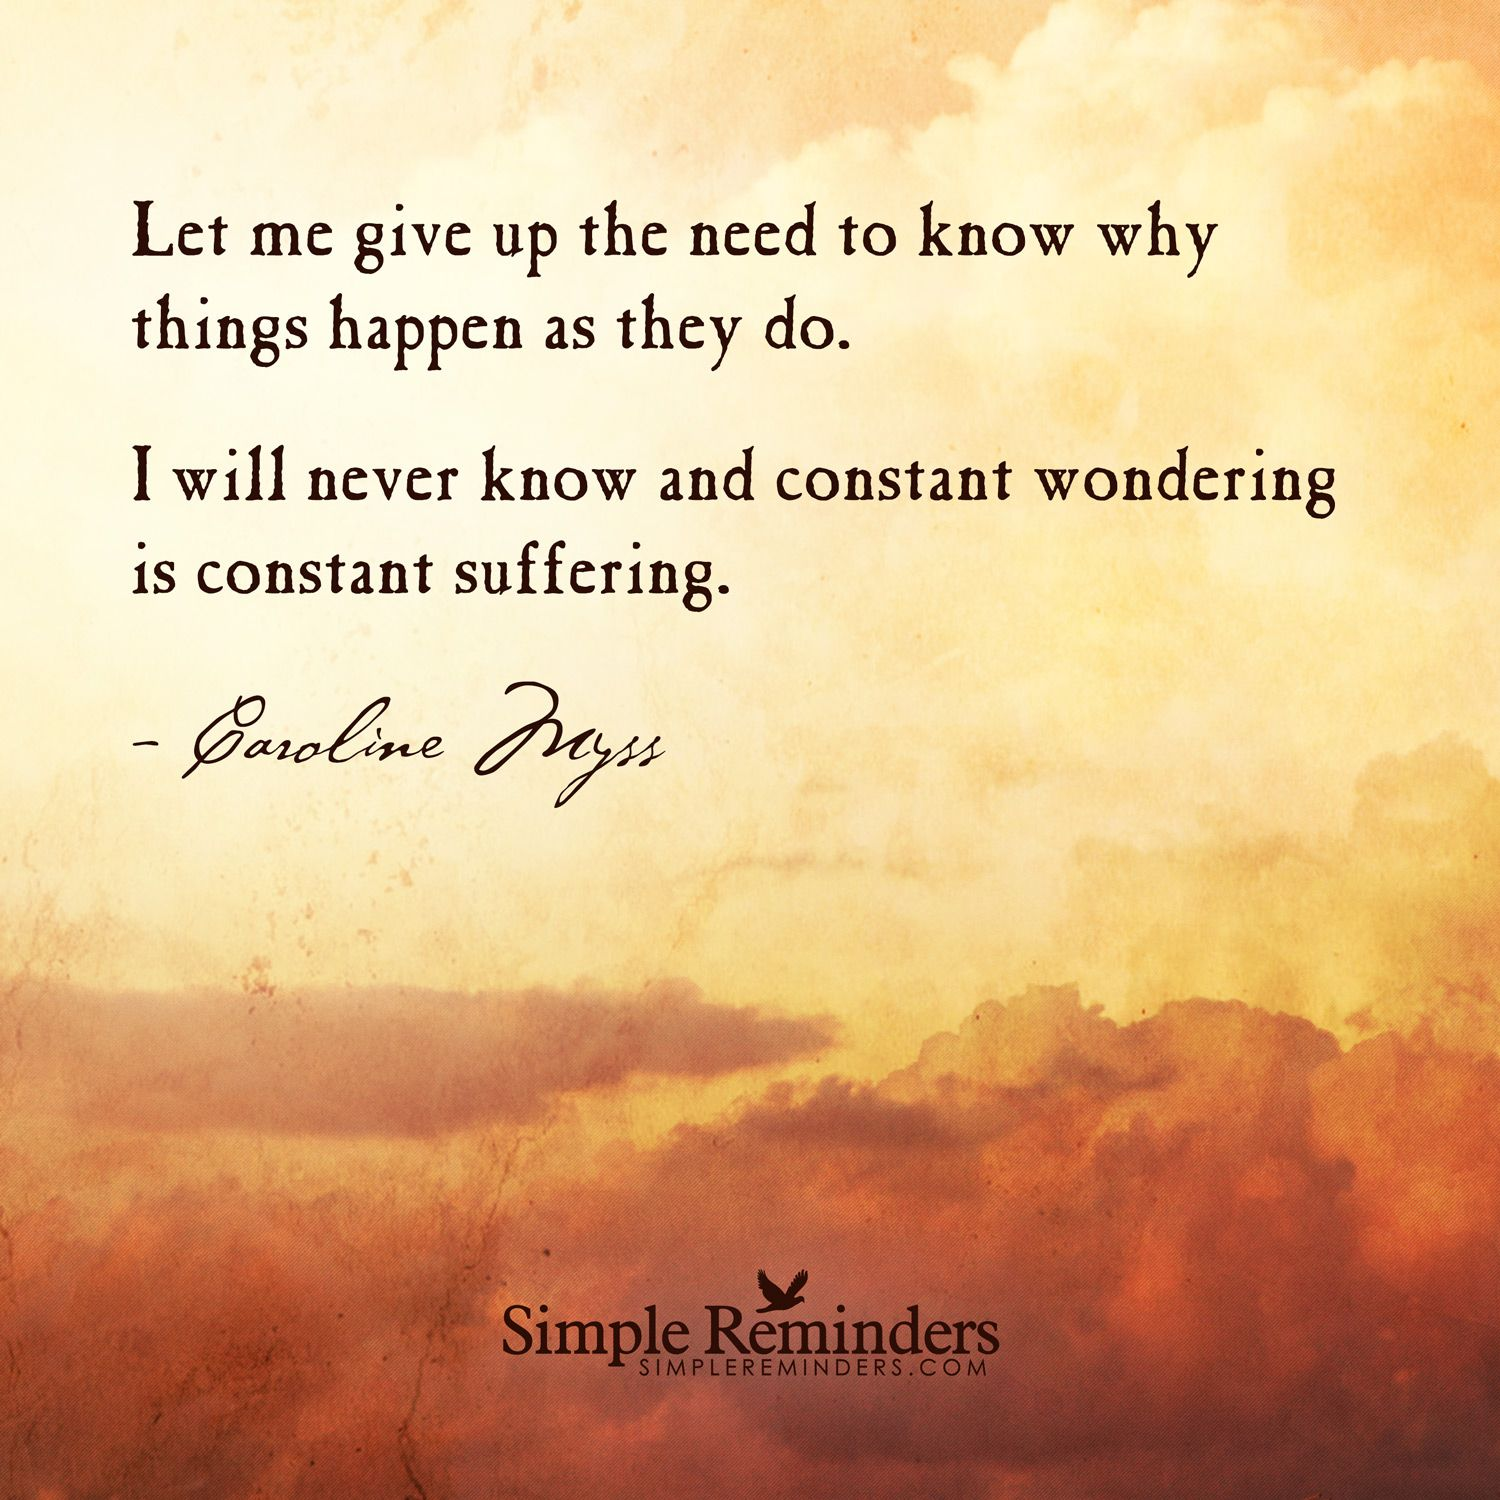 Quotes On Letting Things Happen: Let Me Give Up The Need To Know Why Things Happen As They